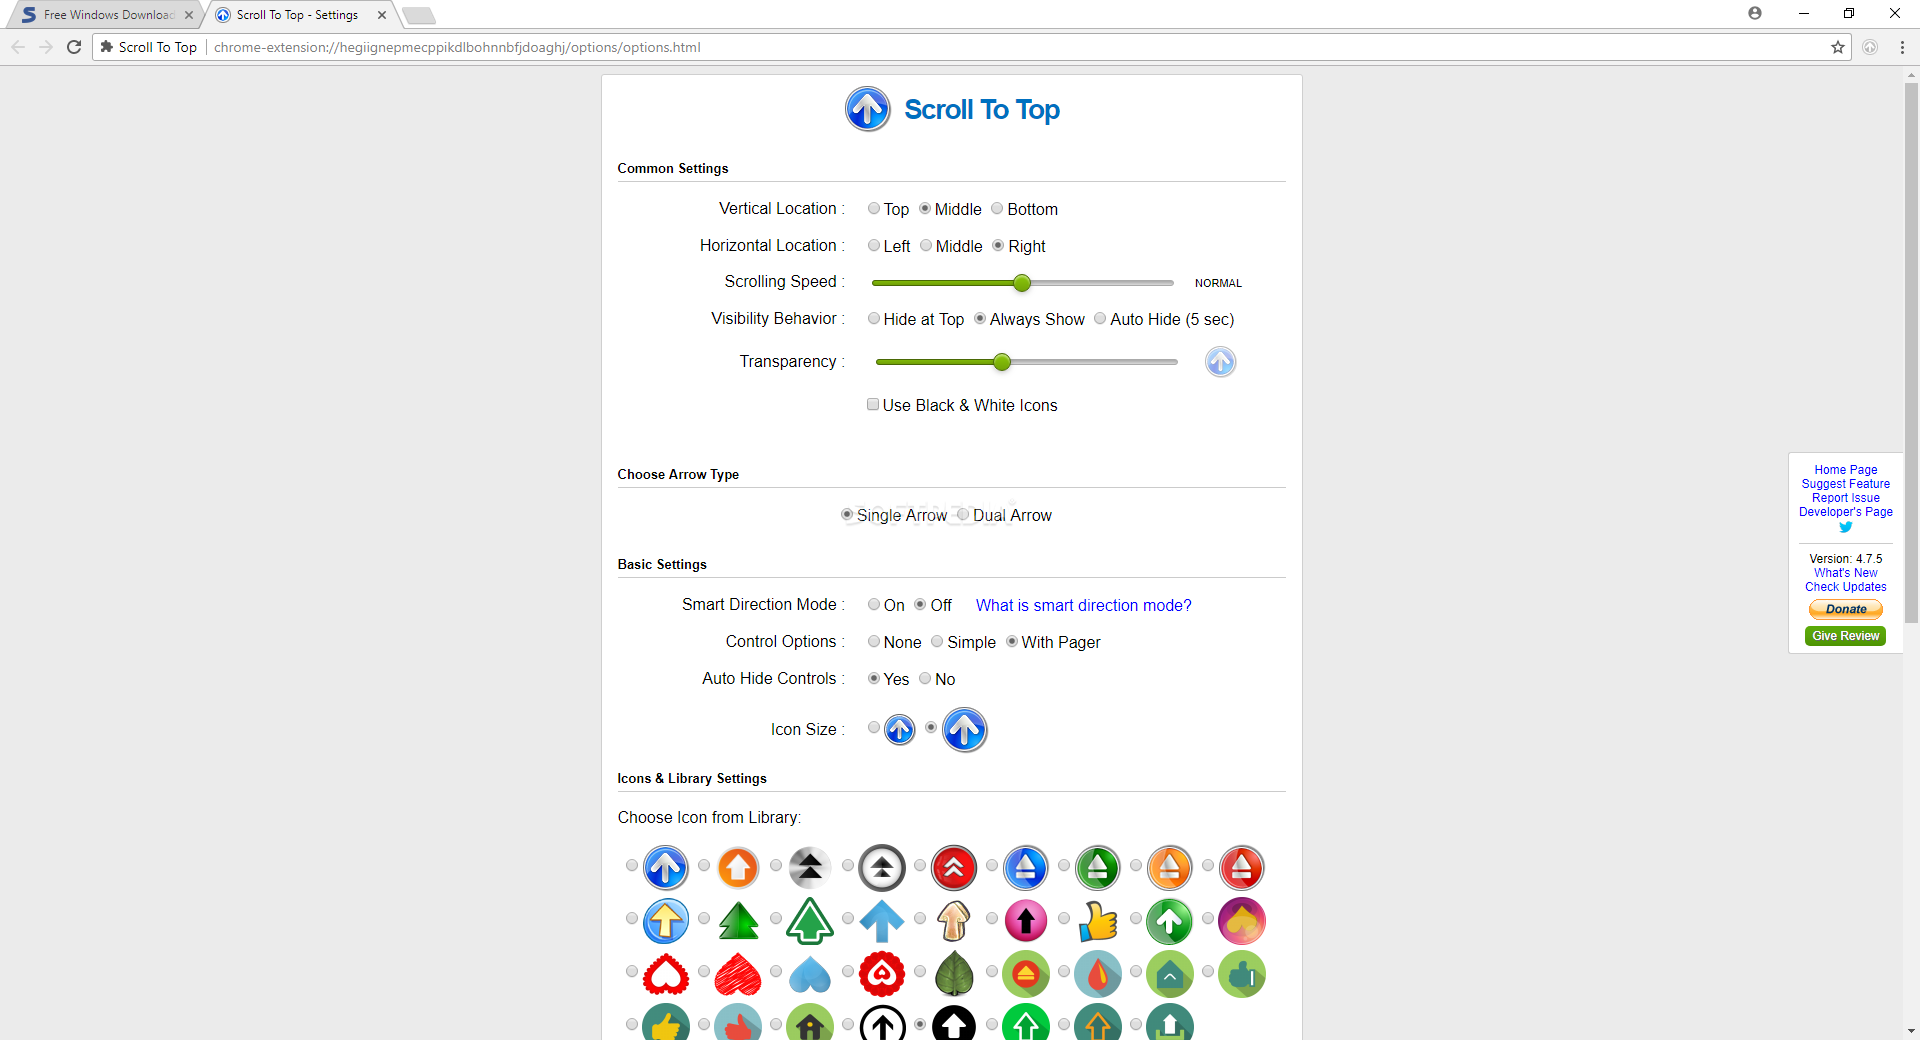 Download Scroll To Top for Chrome 4 8